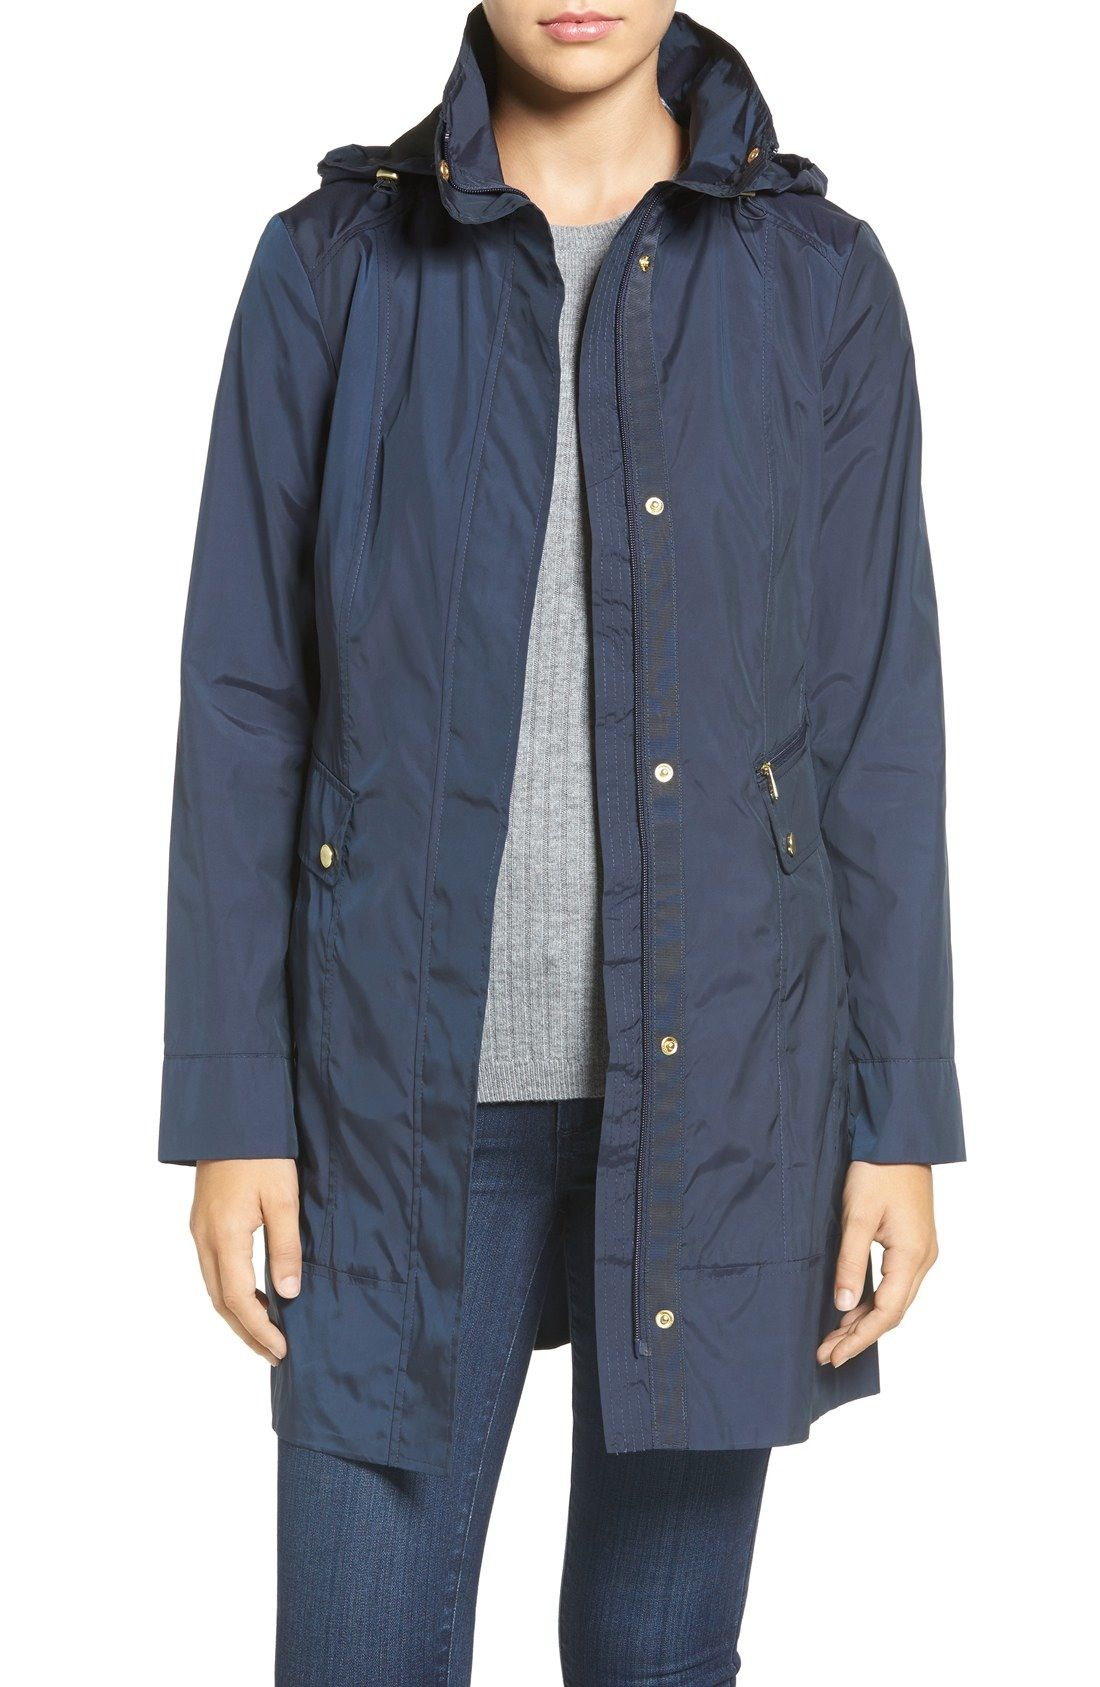 Cole Haan Signature Back Bow Packable Hooded Raincoat (Petite) available at #Nordstrom